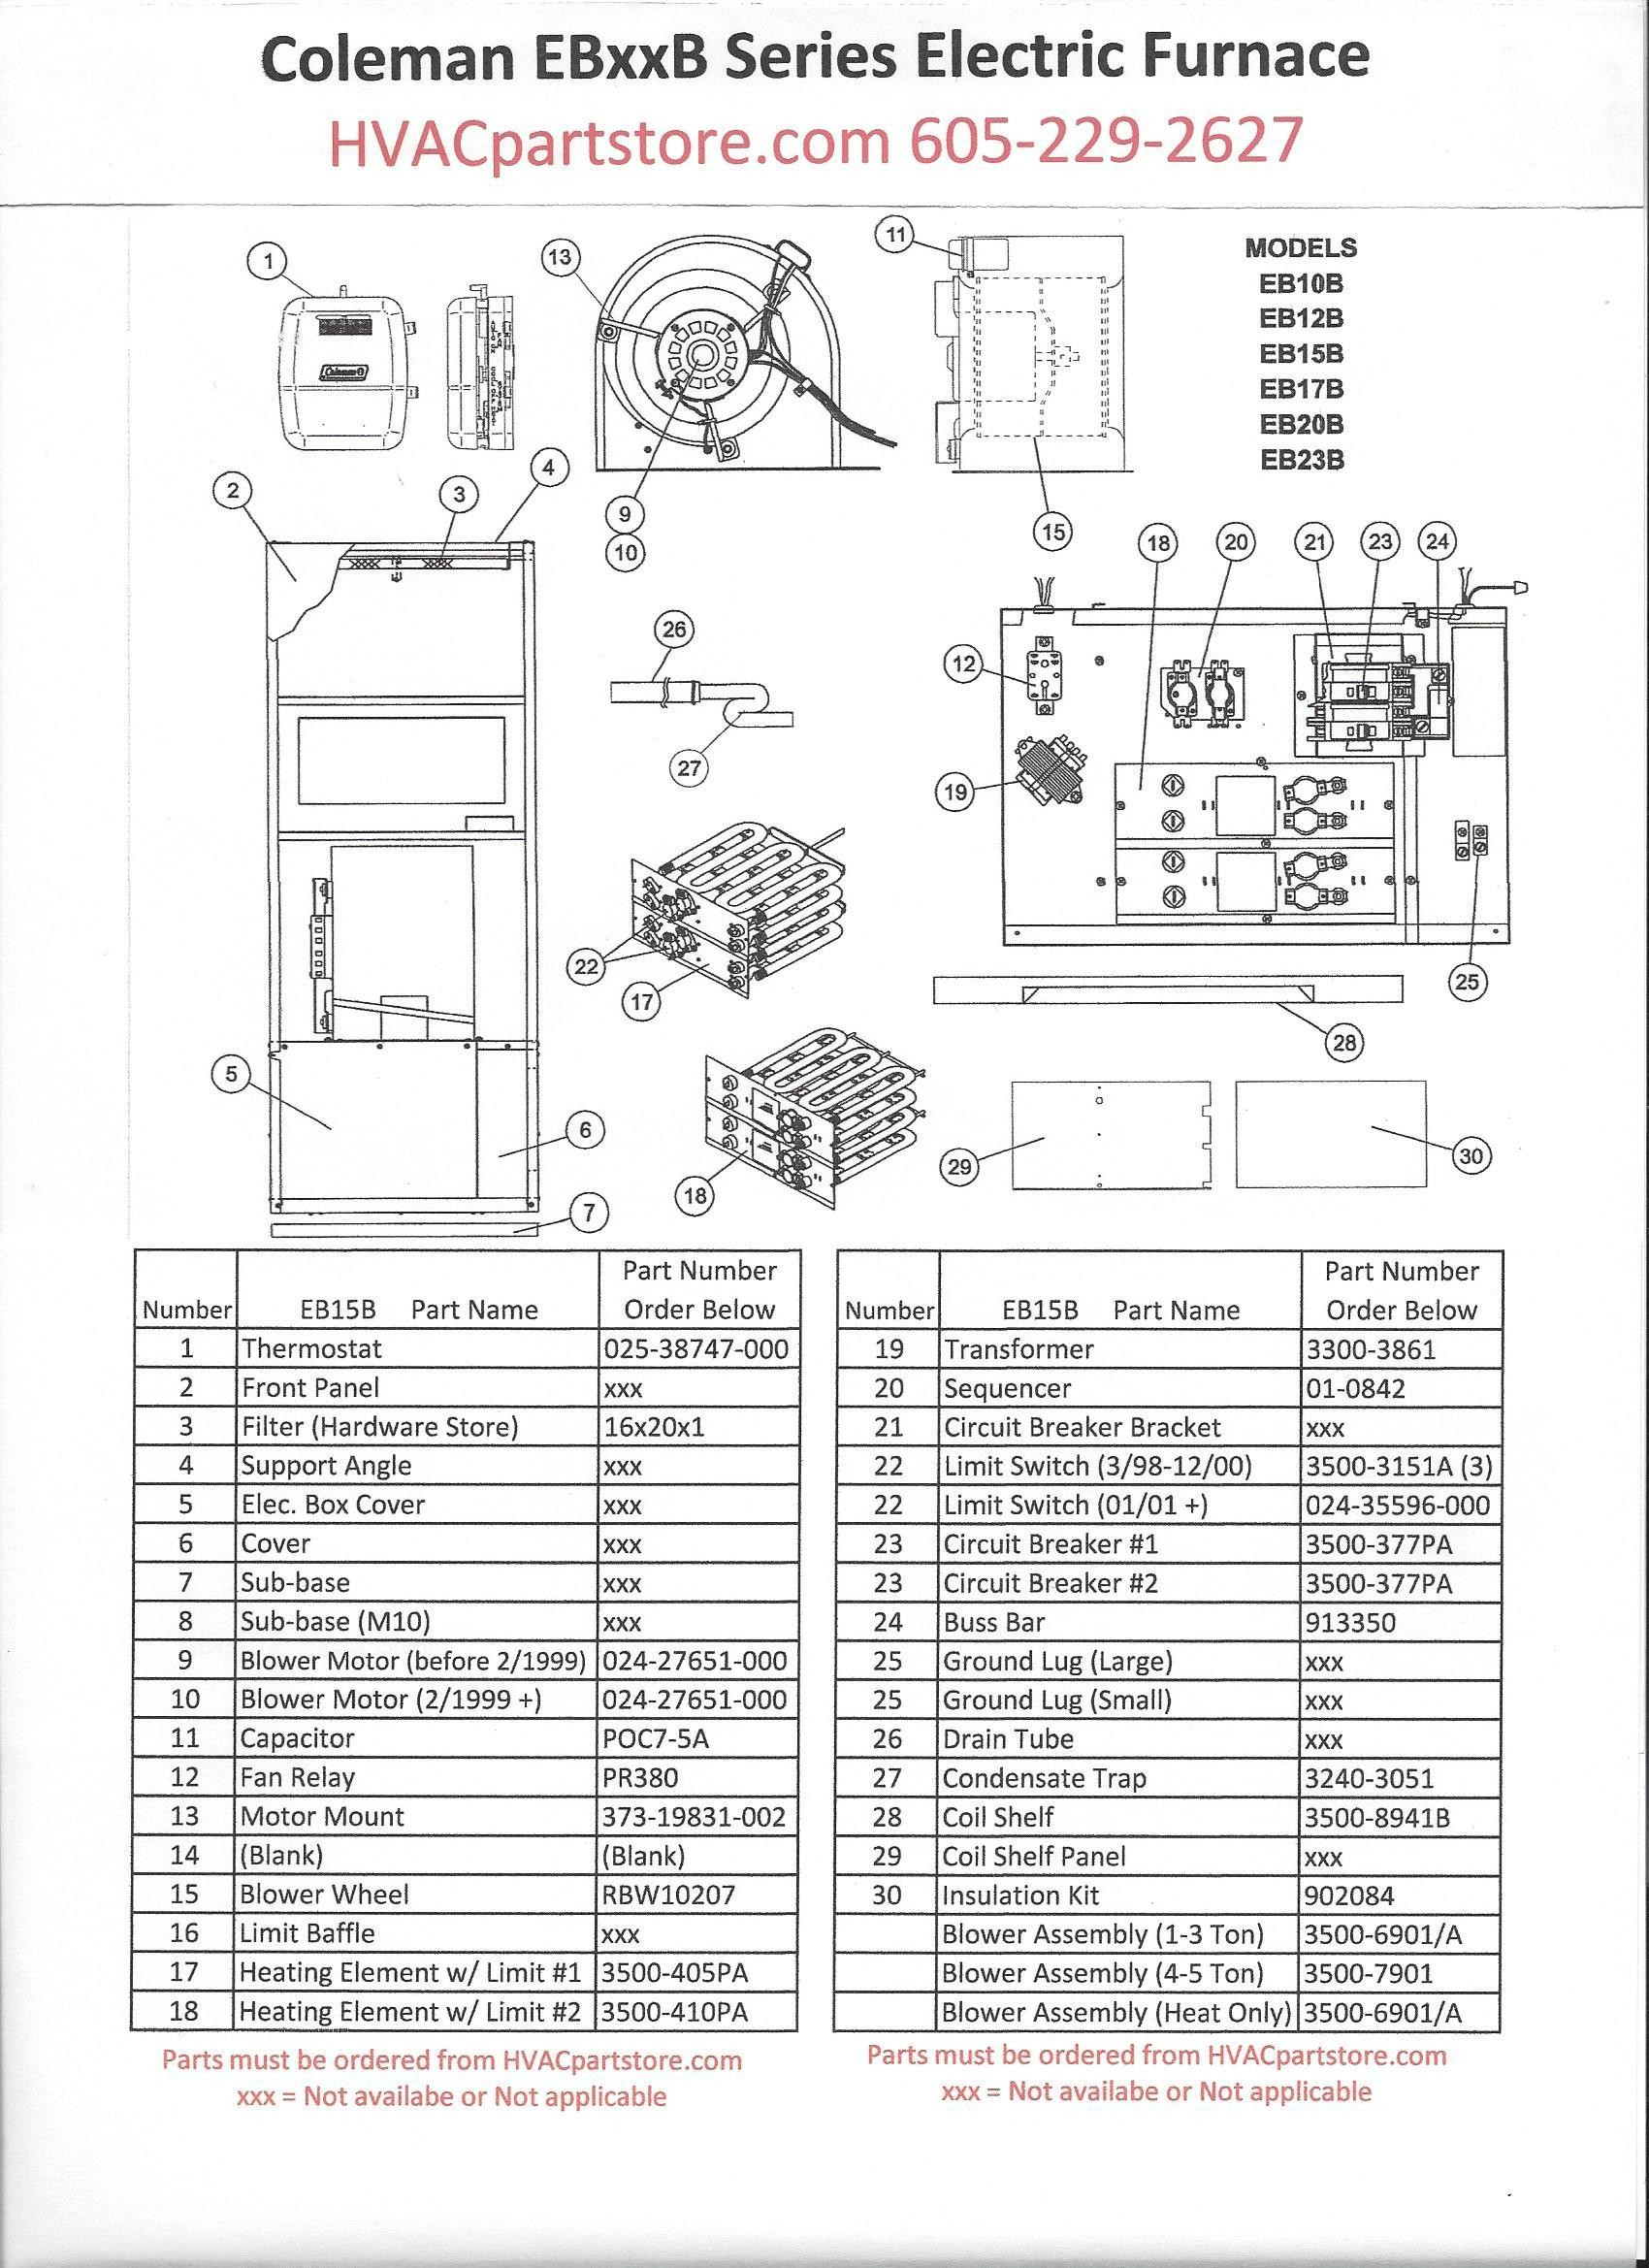 Honeywell Ra832a Wiring Diagram Detailed Schematics 7800 R845 Switching Relay Diy Enthusiasts Gas Valve